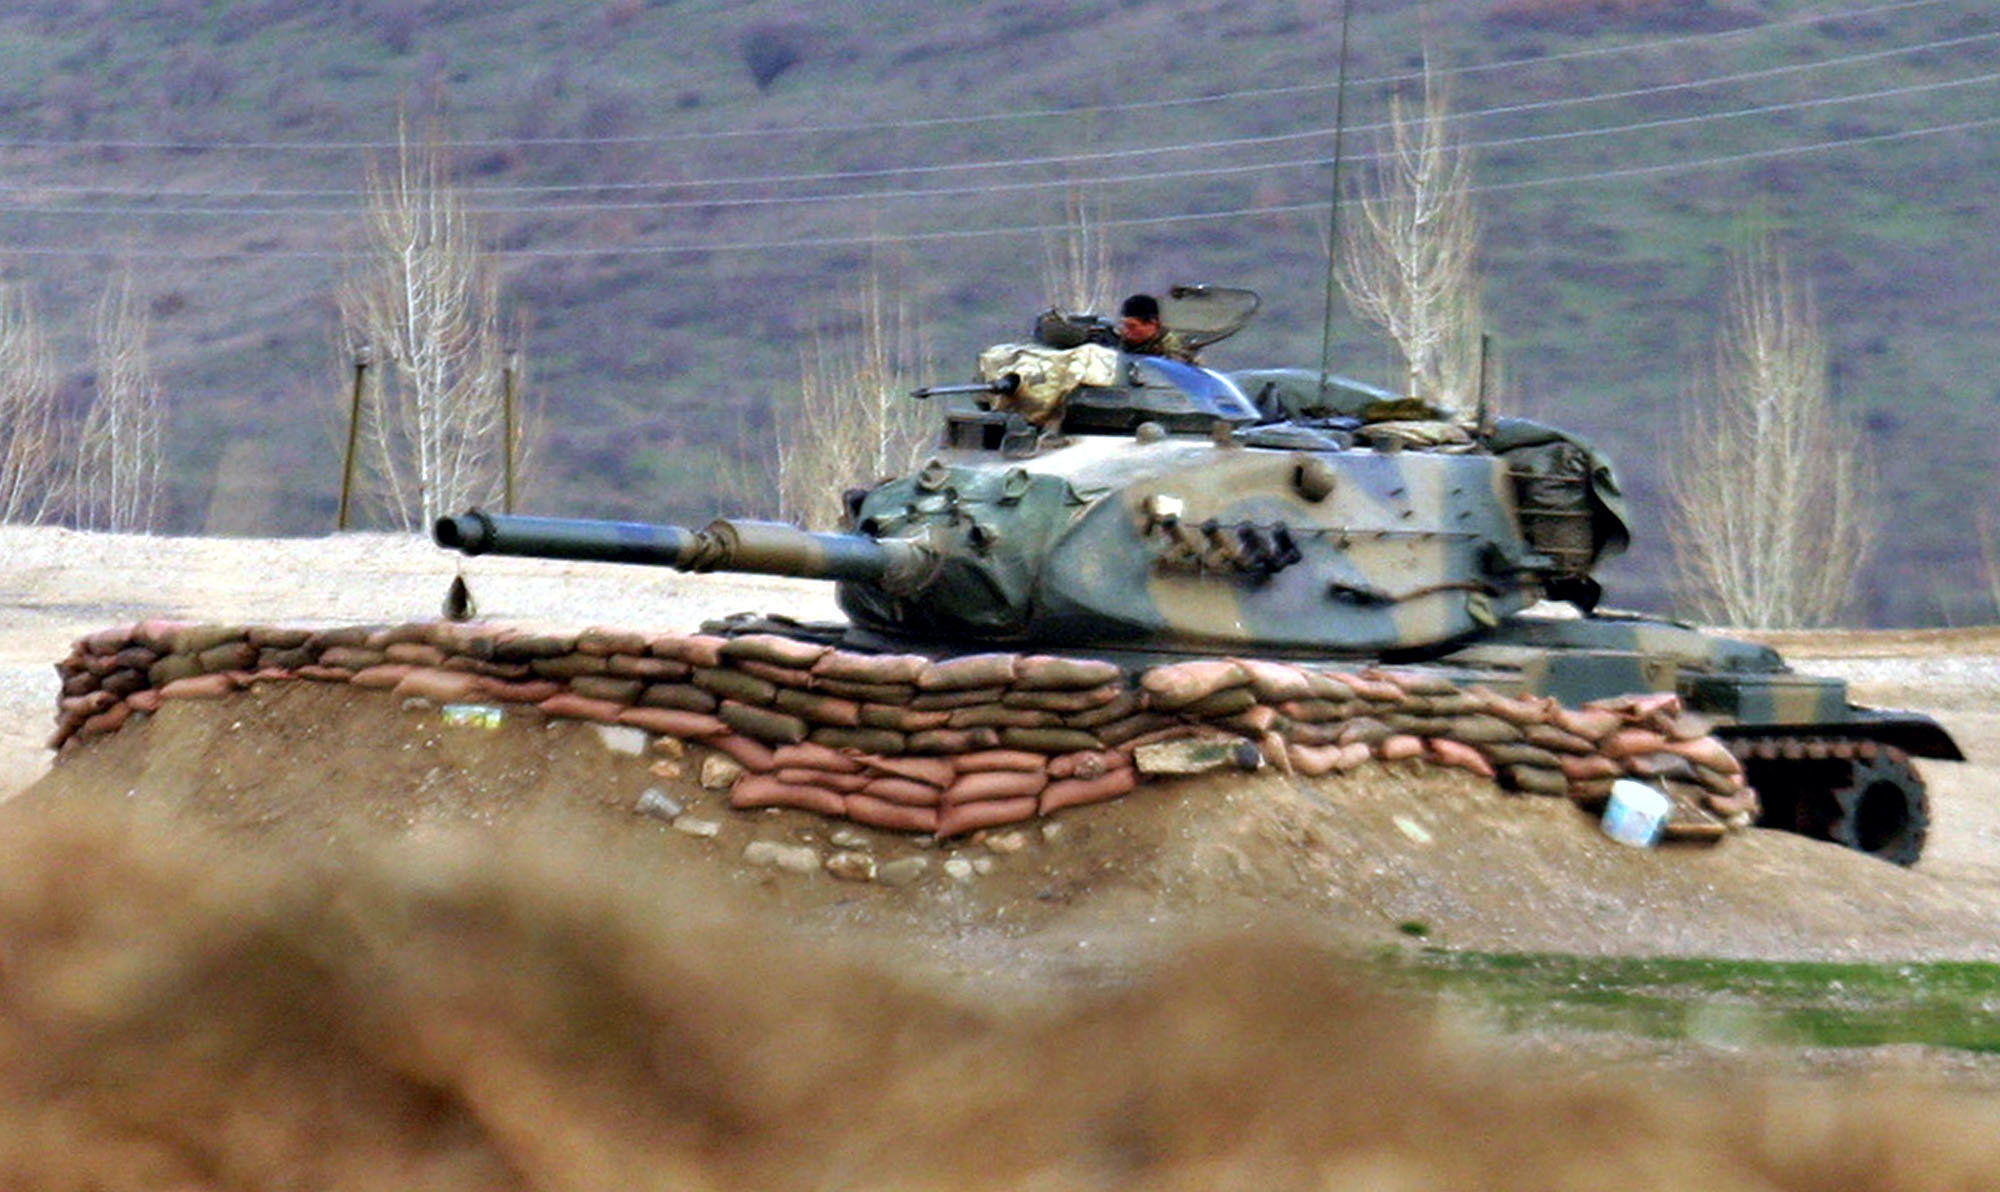 Turkish Army tank stands ready near the village of Bamarni in northern Iraq, 30km beyond the Turkey-Iraq border